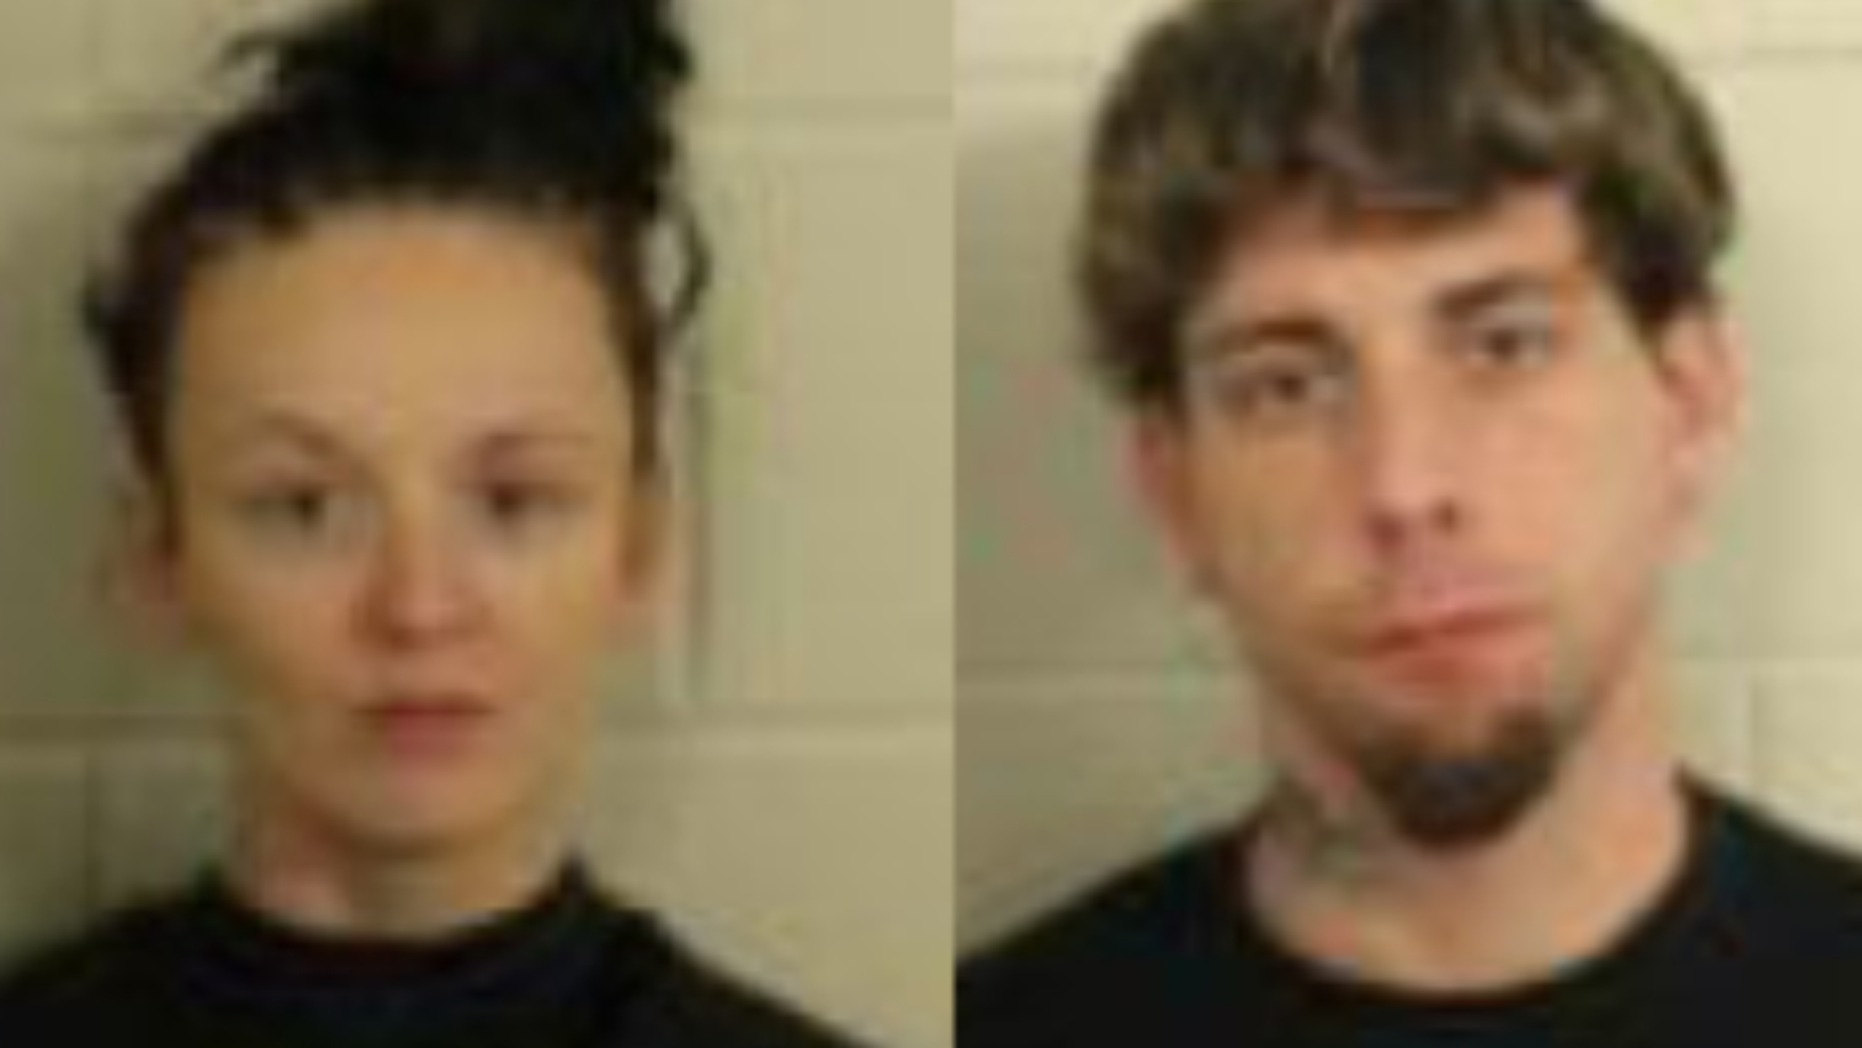 A couple from Georgia was arrested for allegedly giving a 4-year-old a drink mixed with methamphetamine.